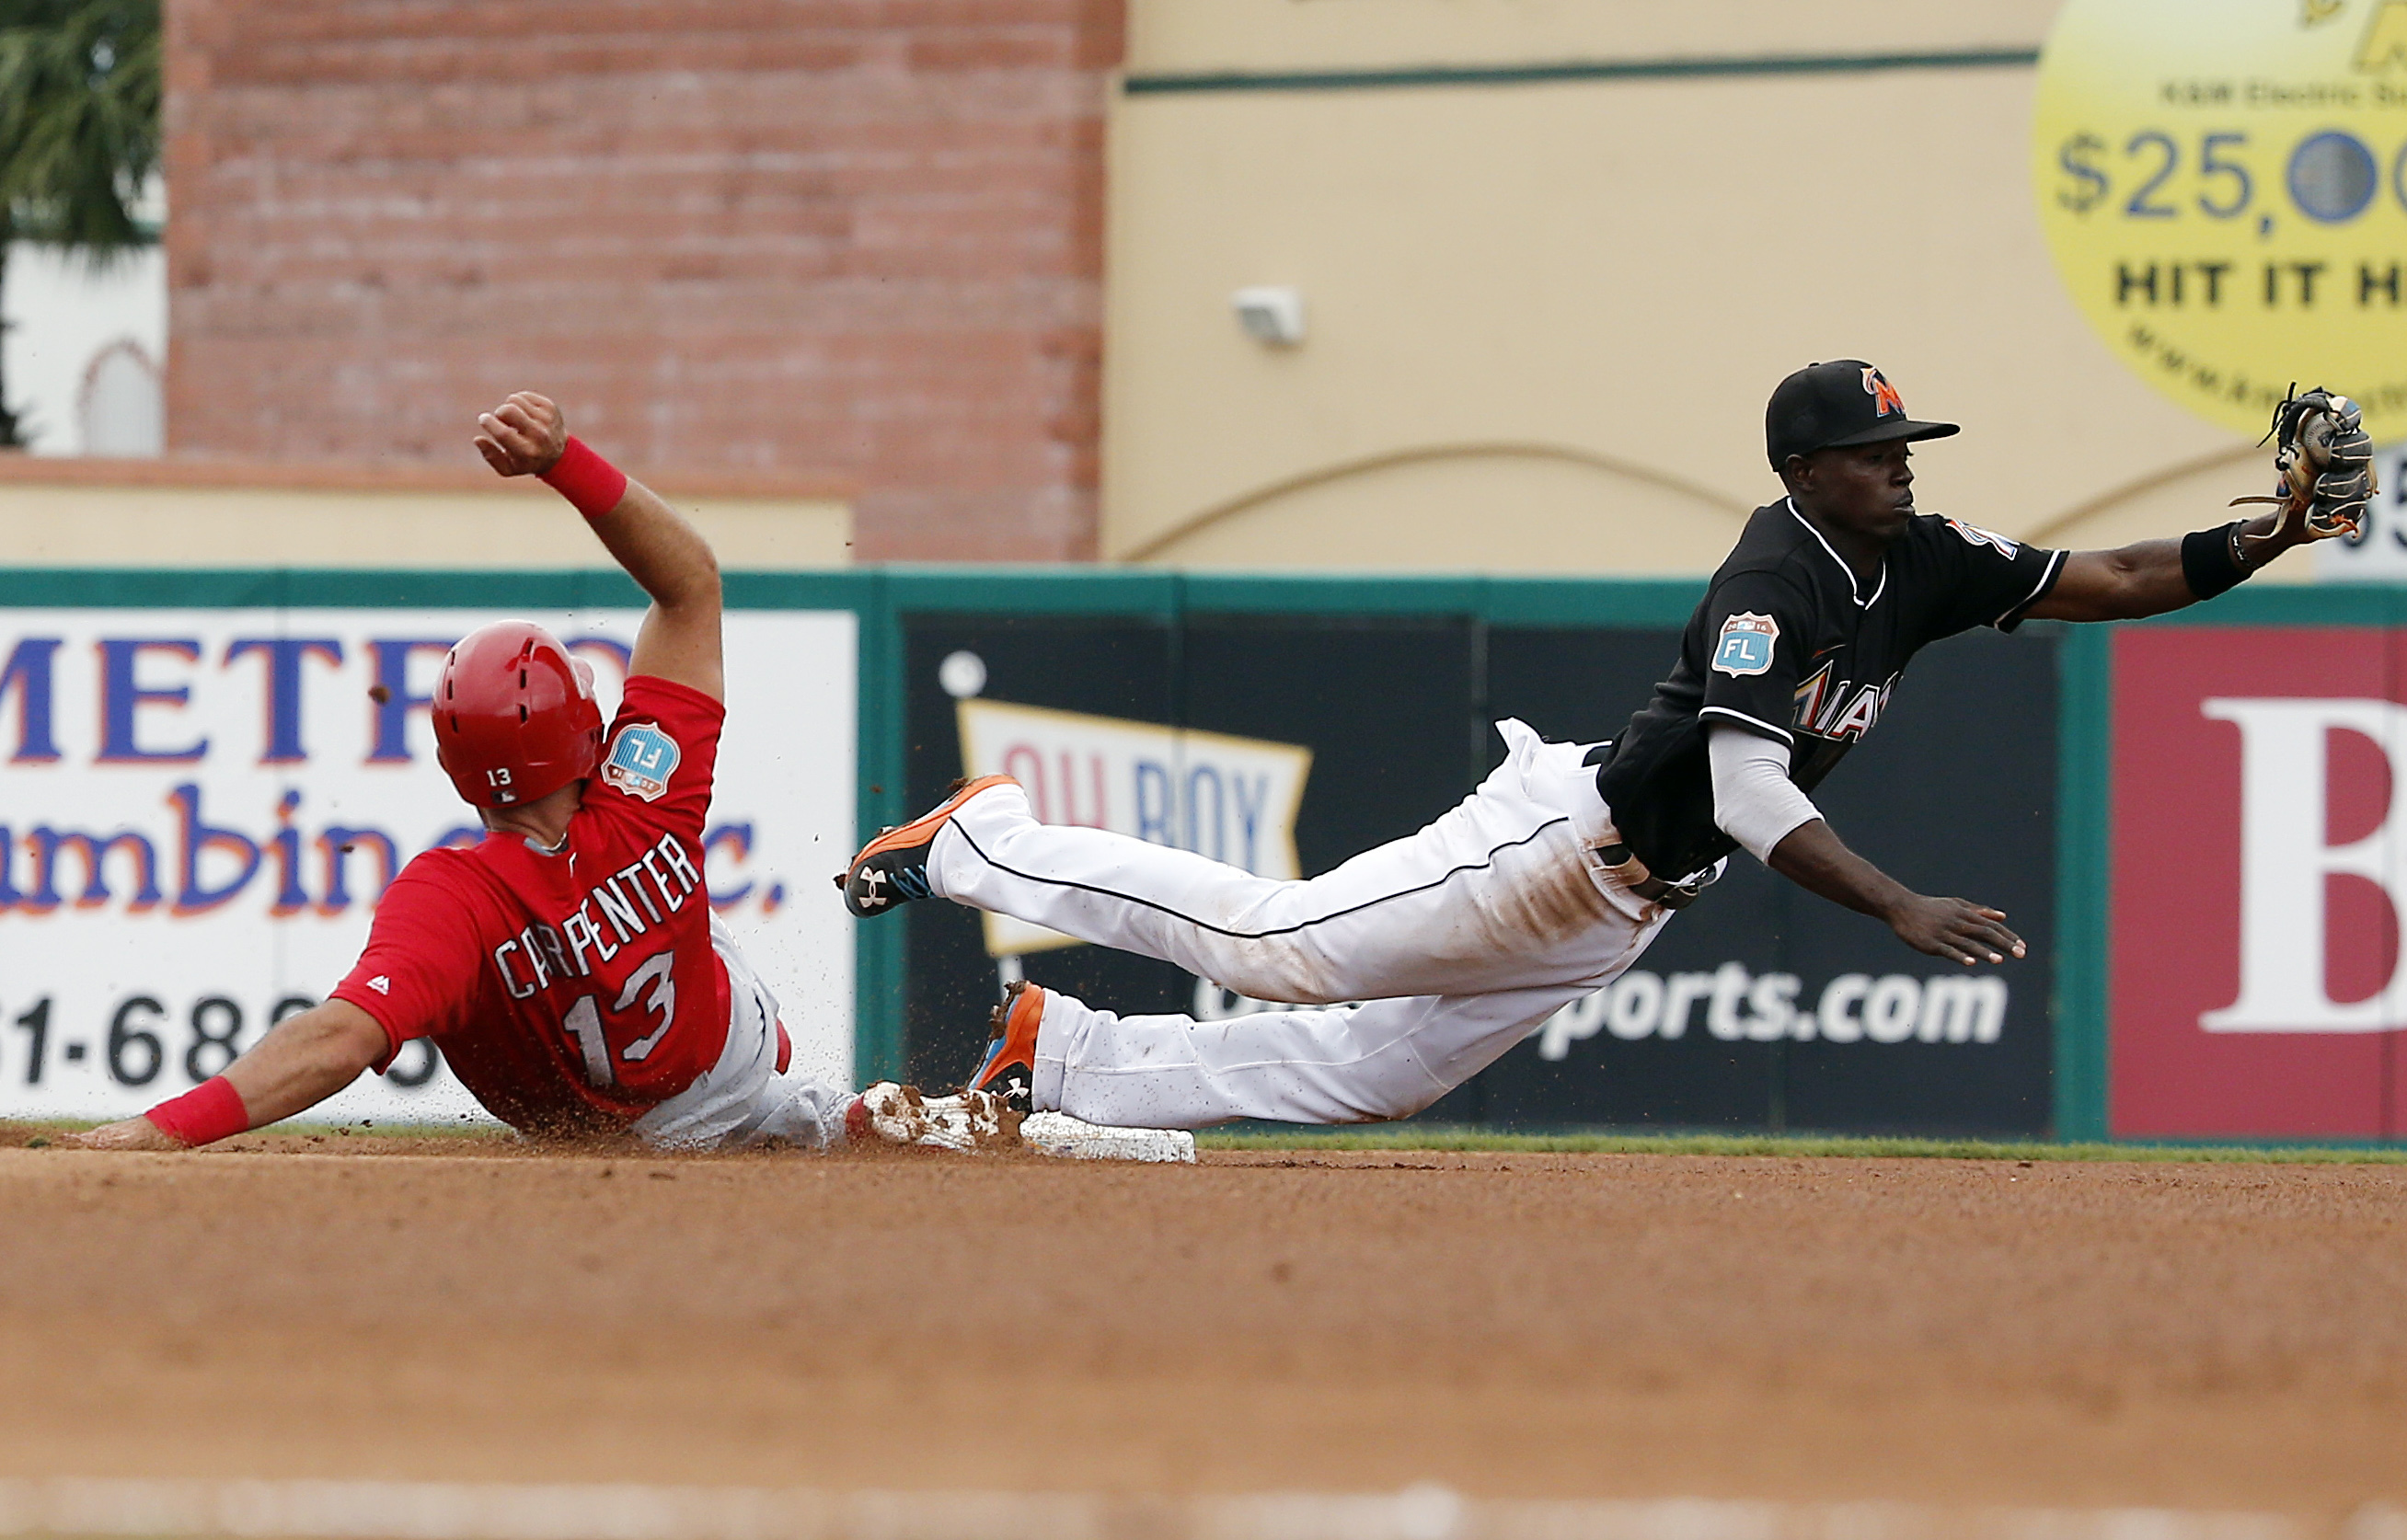 St. Louis Cardinals' Matt Carpenter slides safely into second base after Miami Marlins second baseman Dee Gordon misses the ball during the fourth inning of an exhibition spring training baseball game, Wednesday, March 30, 2016, in Jupiter, Fla. (AP Photo